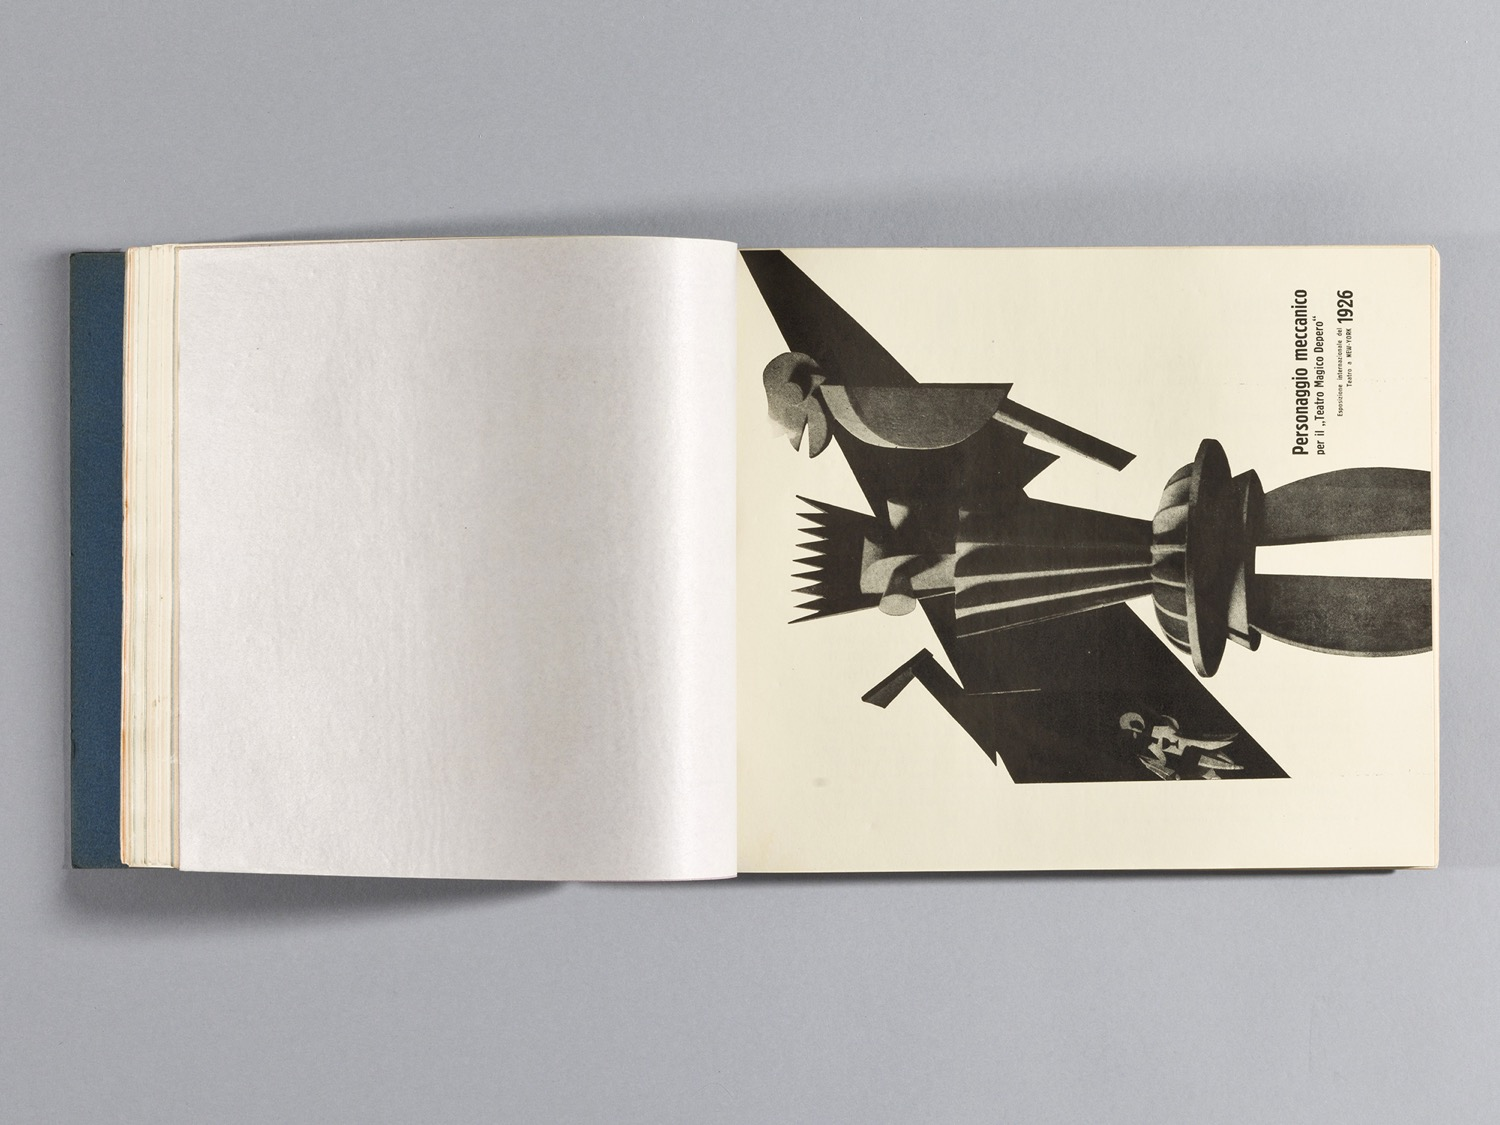 Depero Bolted Book 68